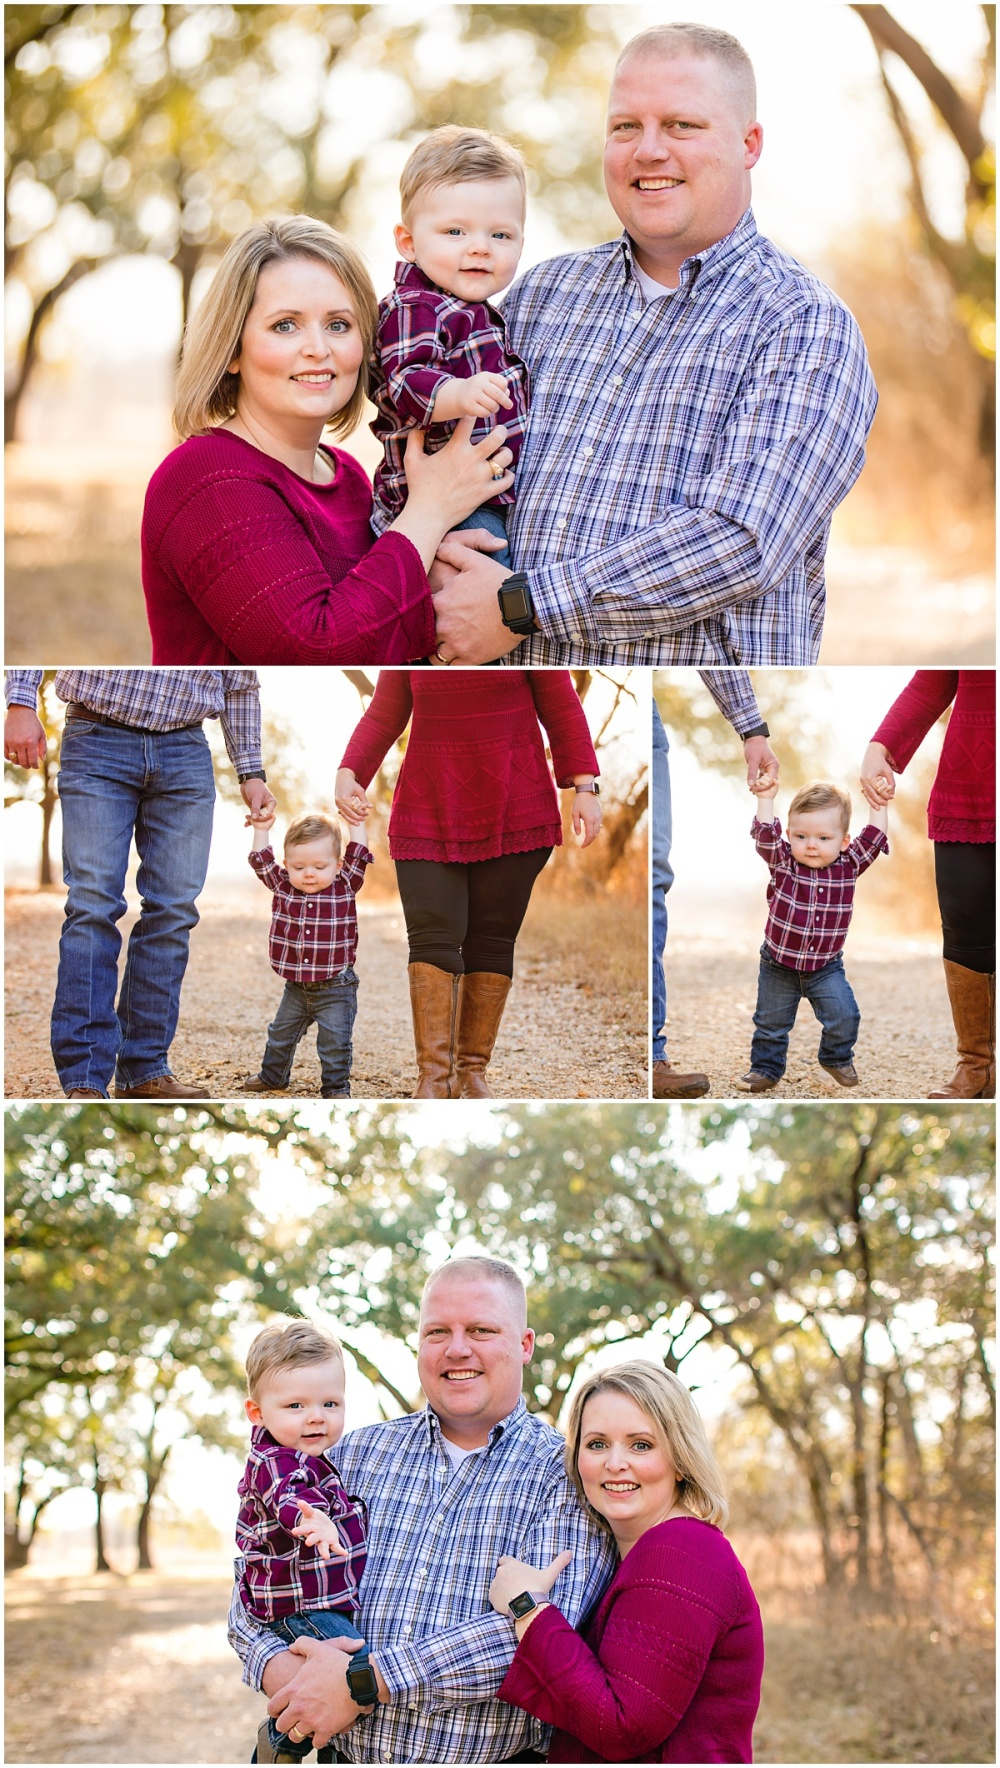 Family-Children-Maternity-Portraits-San-Antonio-Hill-Country-Texas-Carly-Barton-Photography_0113.jpg